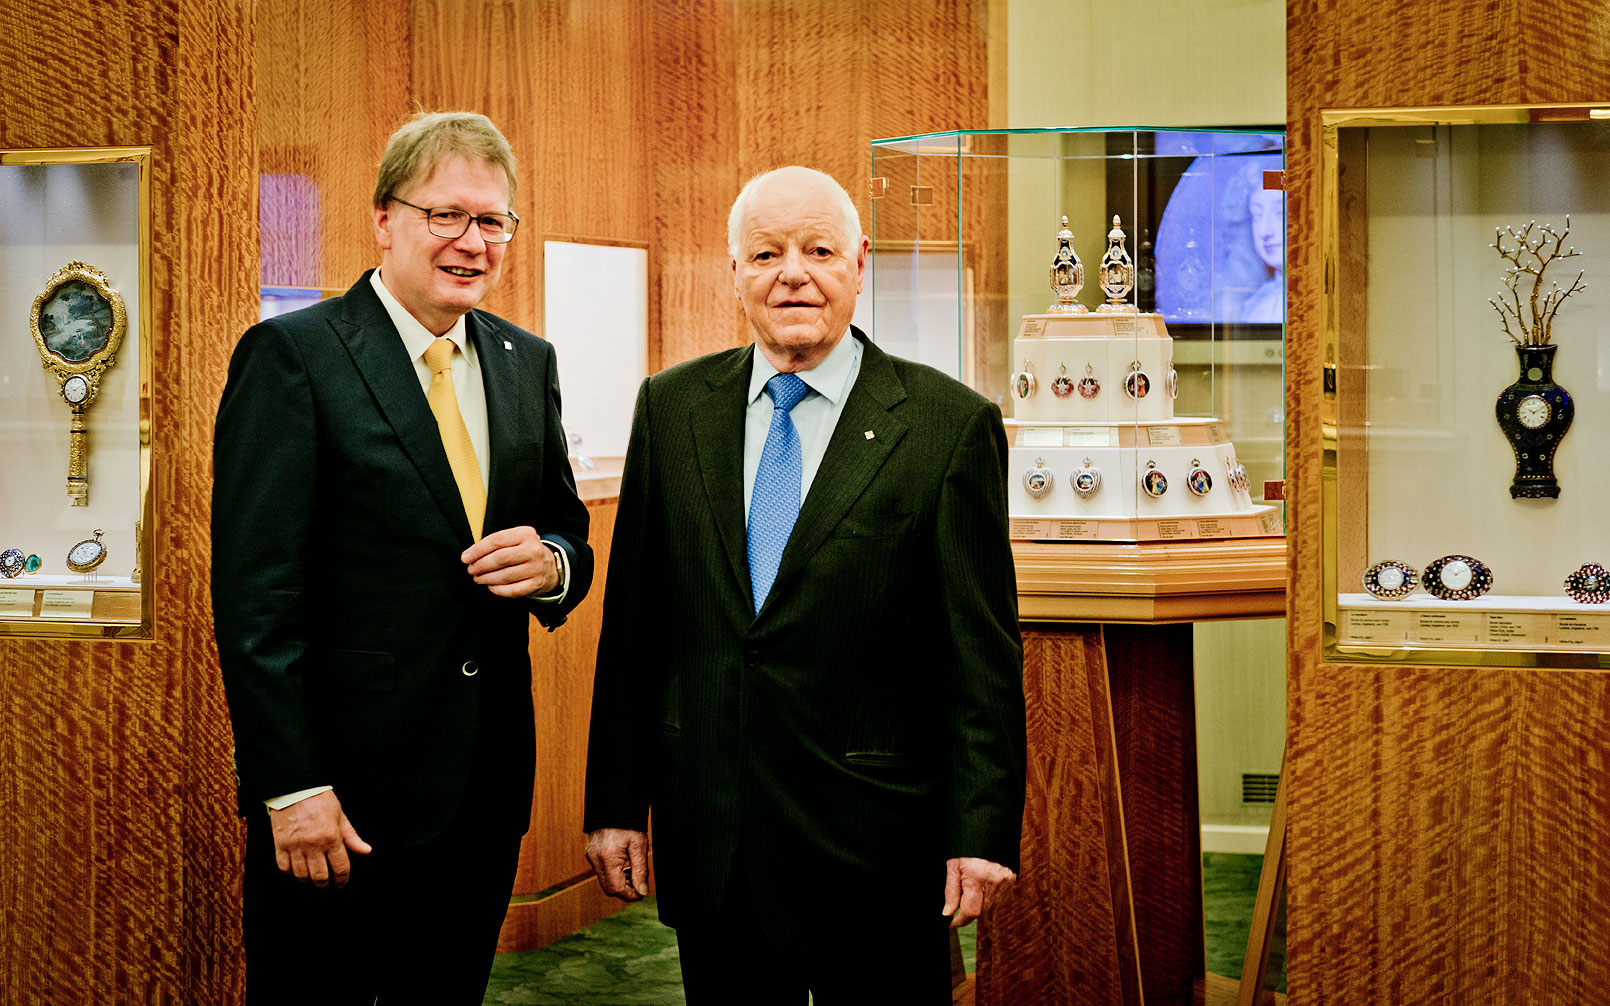 Dr. Friess (left) with Philippe Stern, Honorary President of Patek Philippe, at the Patek Philippe Museum in Geneva